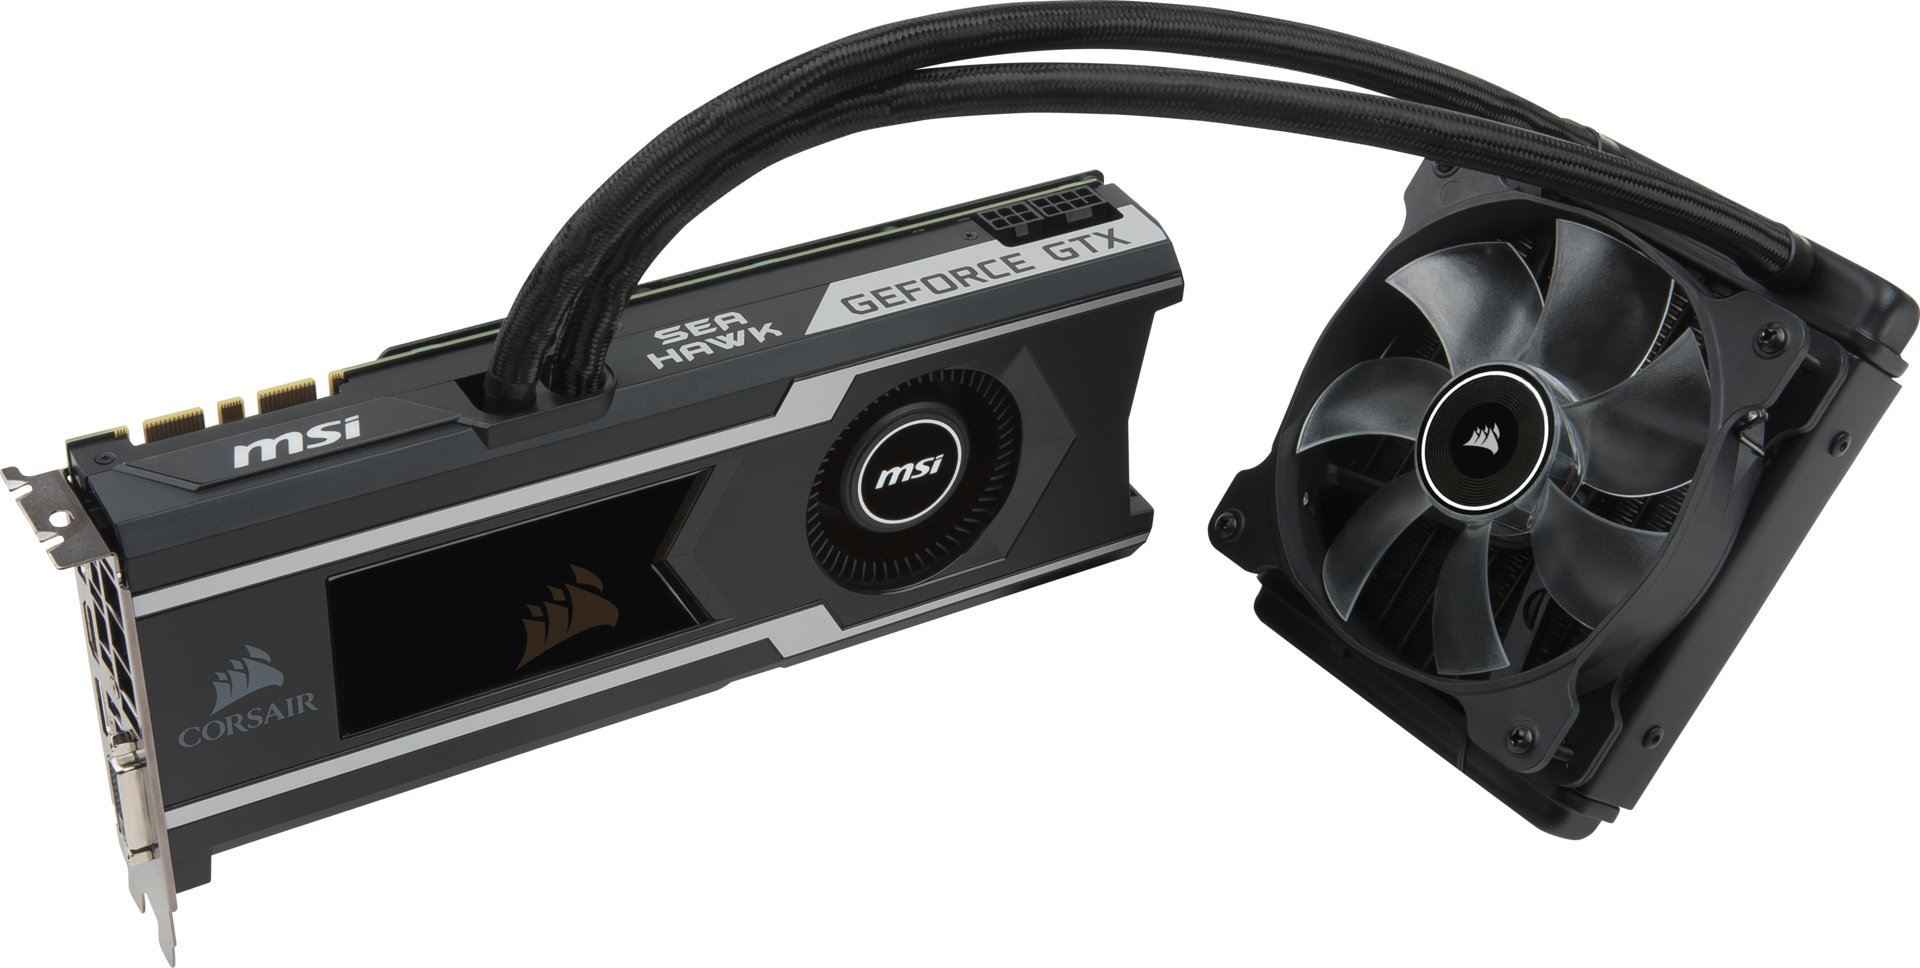 MSI GeForce GTX 1080 Ti Sea Hawk (X)